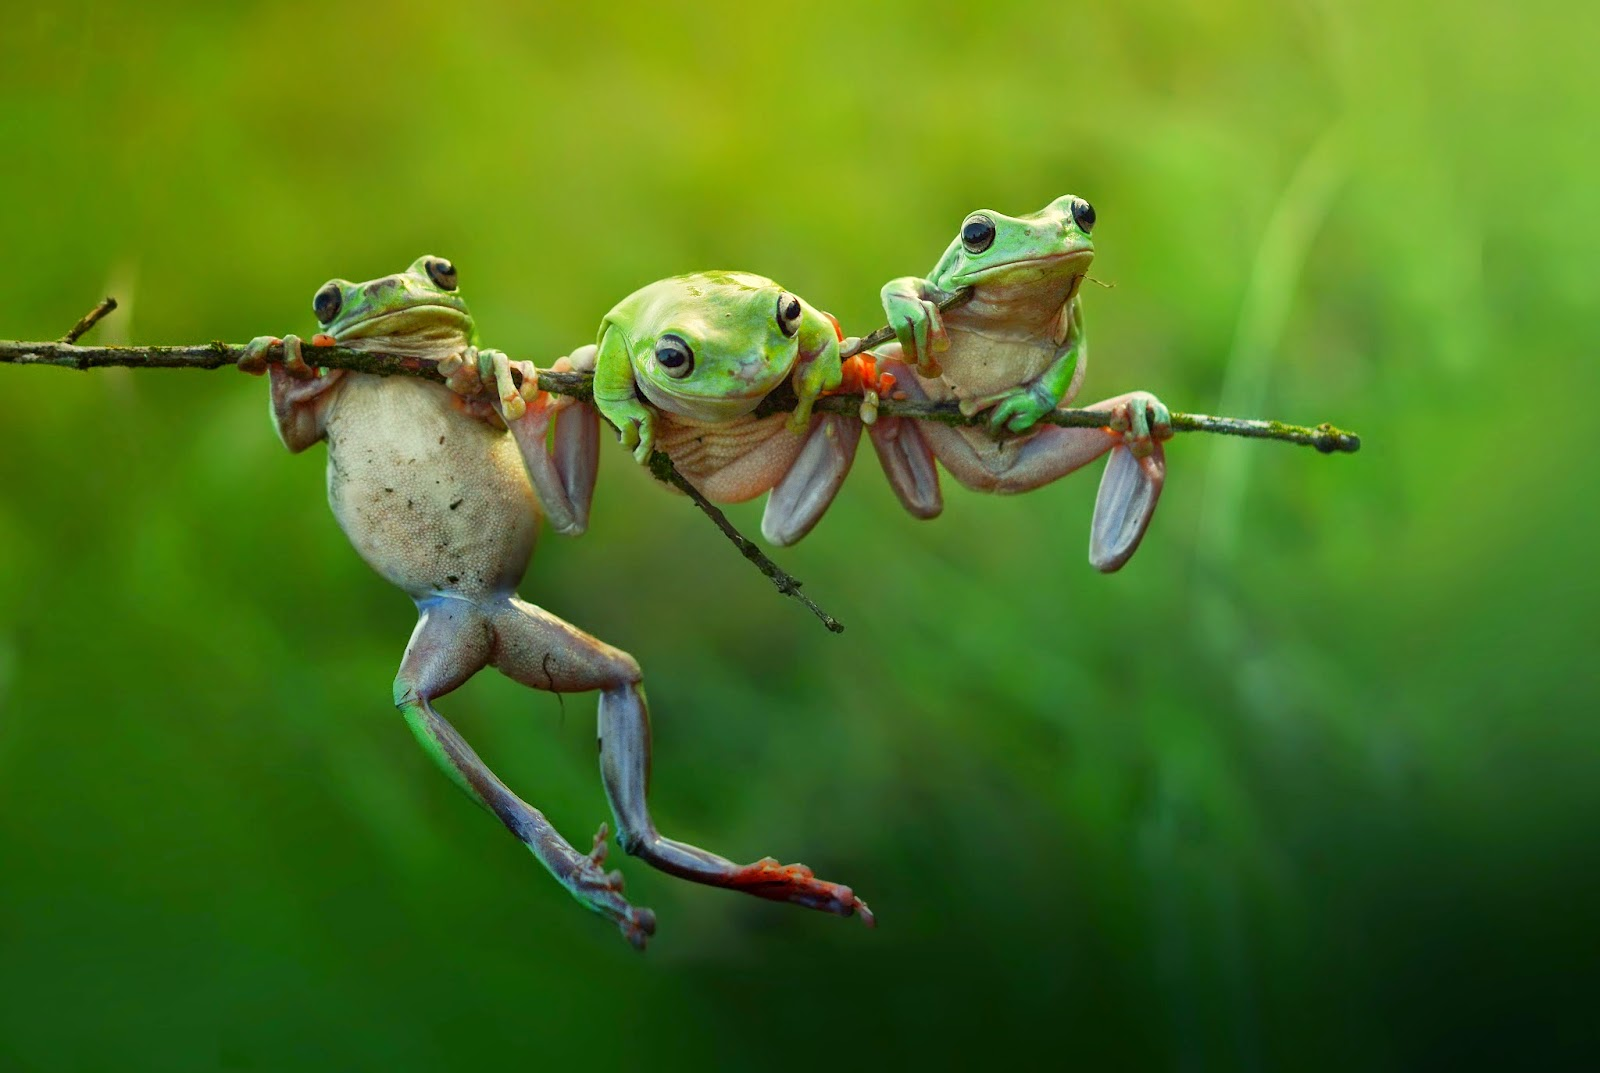 Copyright: ©Harfian Herdi, Indonesia, Shortlist, Nature &Wildlife, Open, 2015 Sony World Photography Awards. Image Name: Frog story. Description: Three cute frog at the morning lights